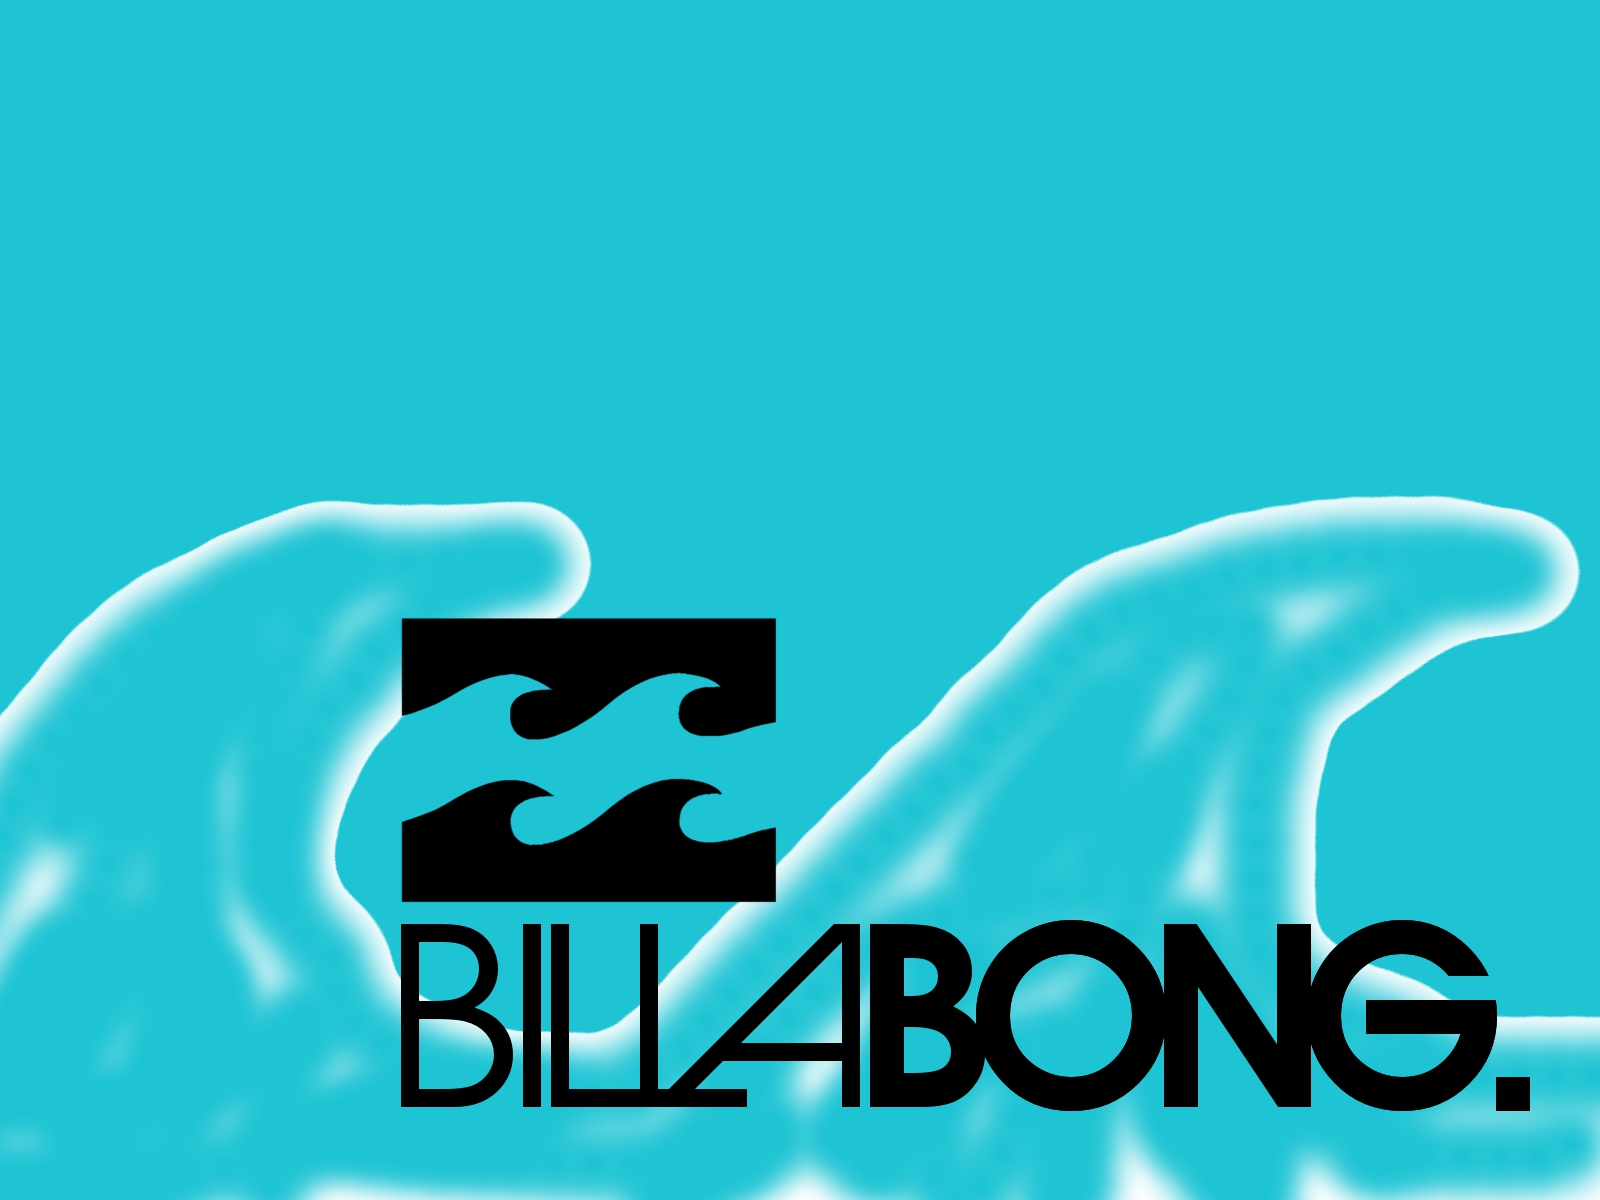 Billabong Logo On Blue Waves Background 1600x1200 DESKTOP